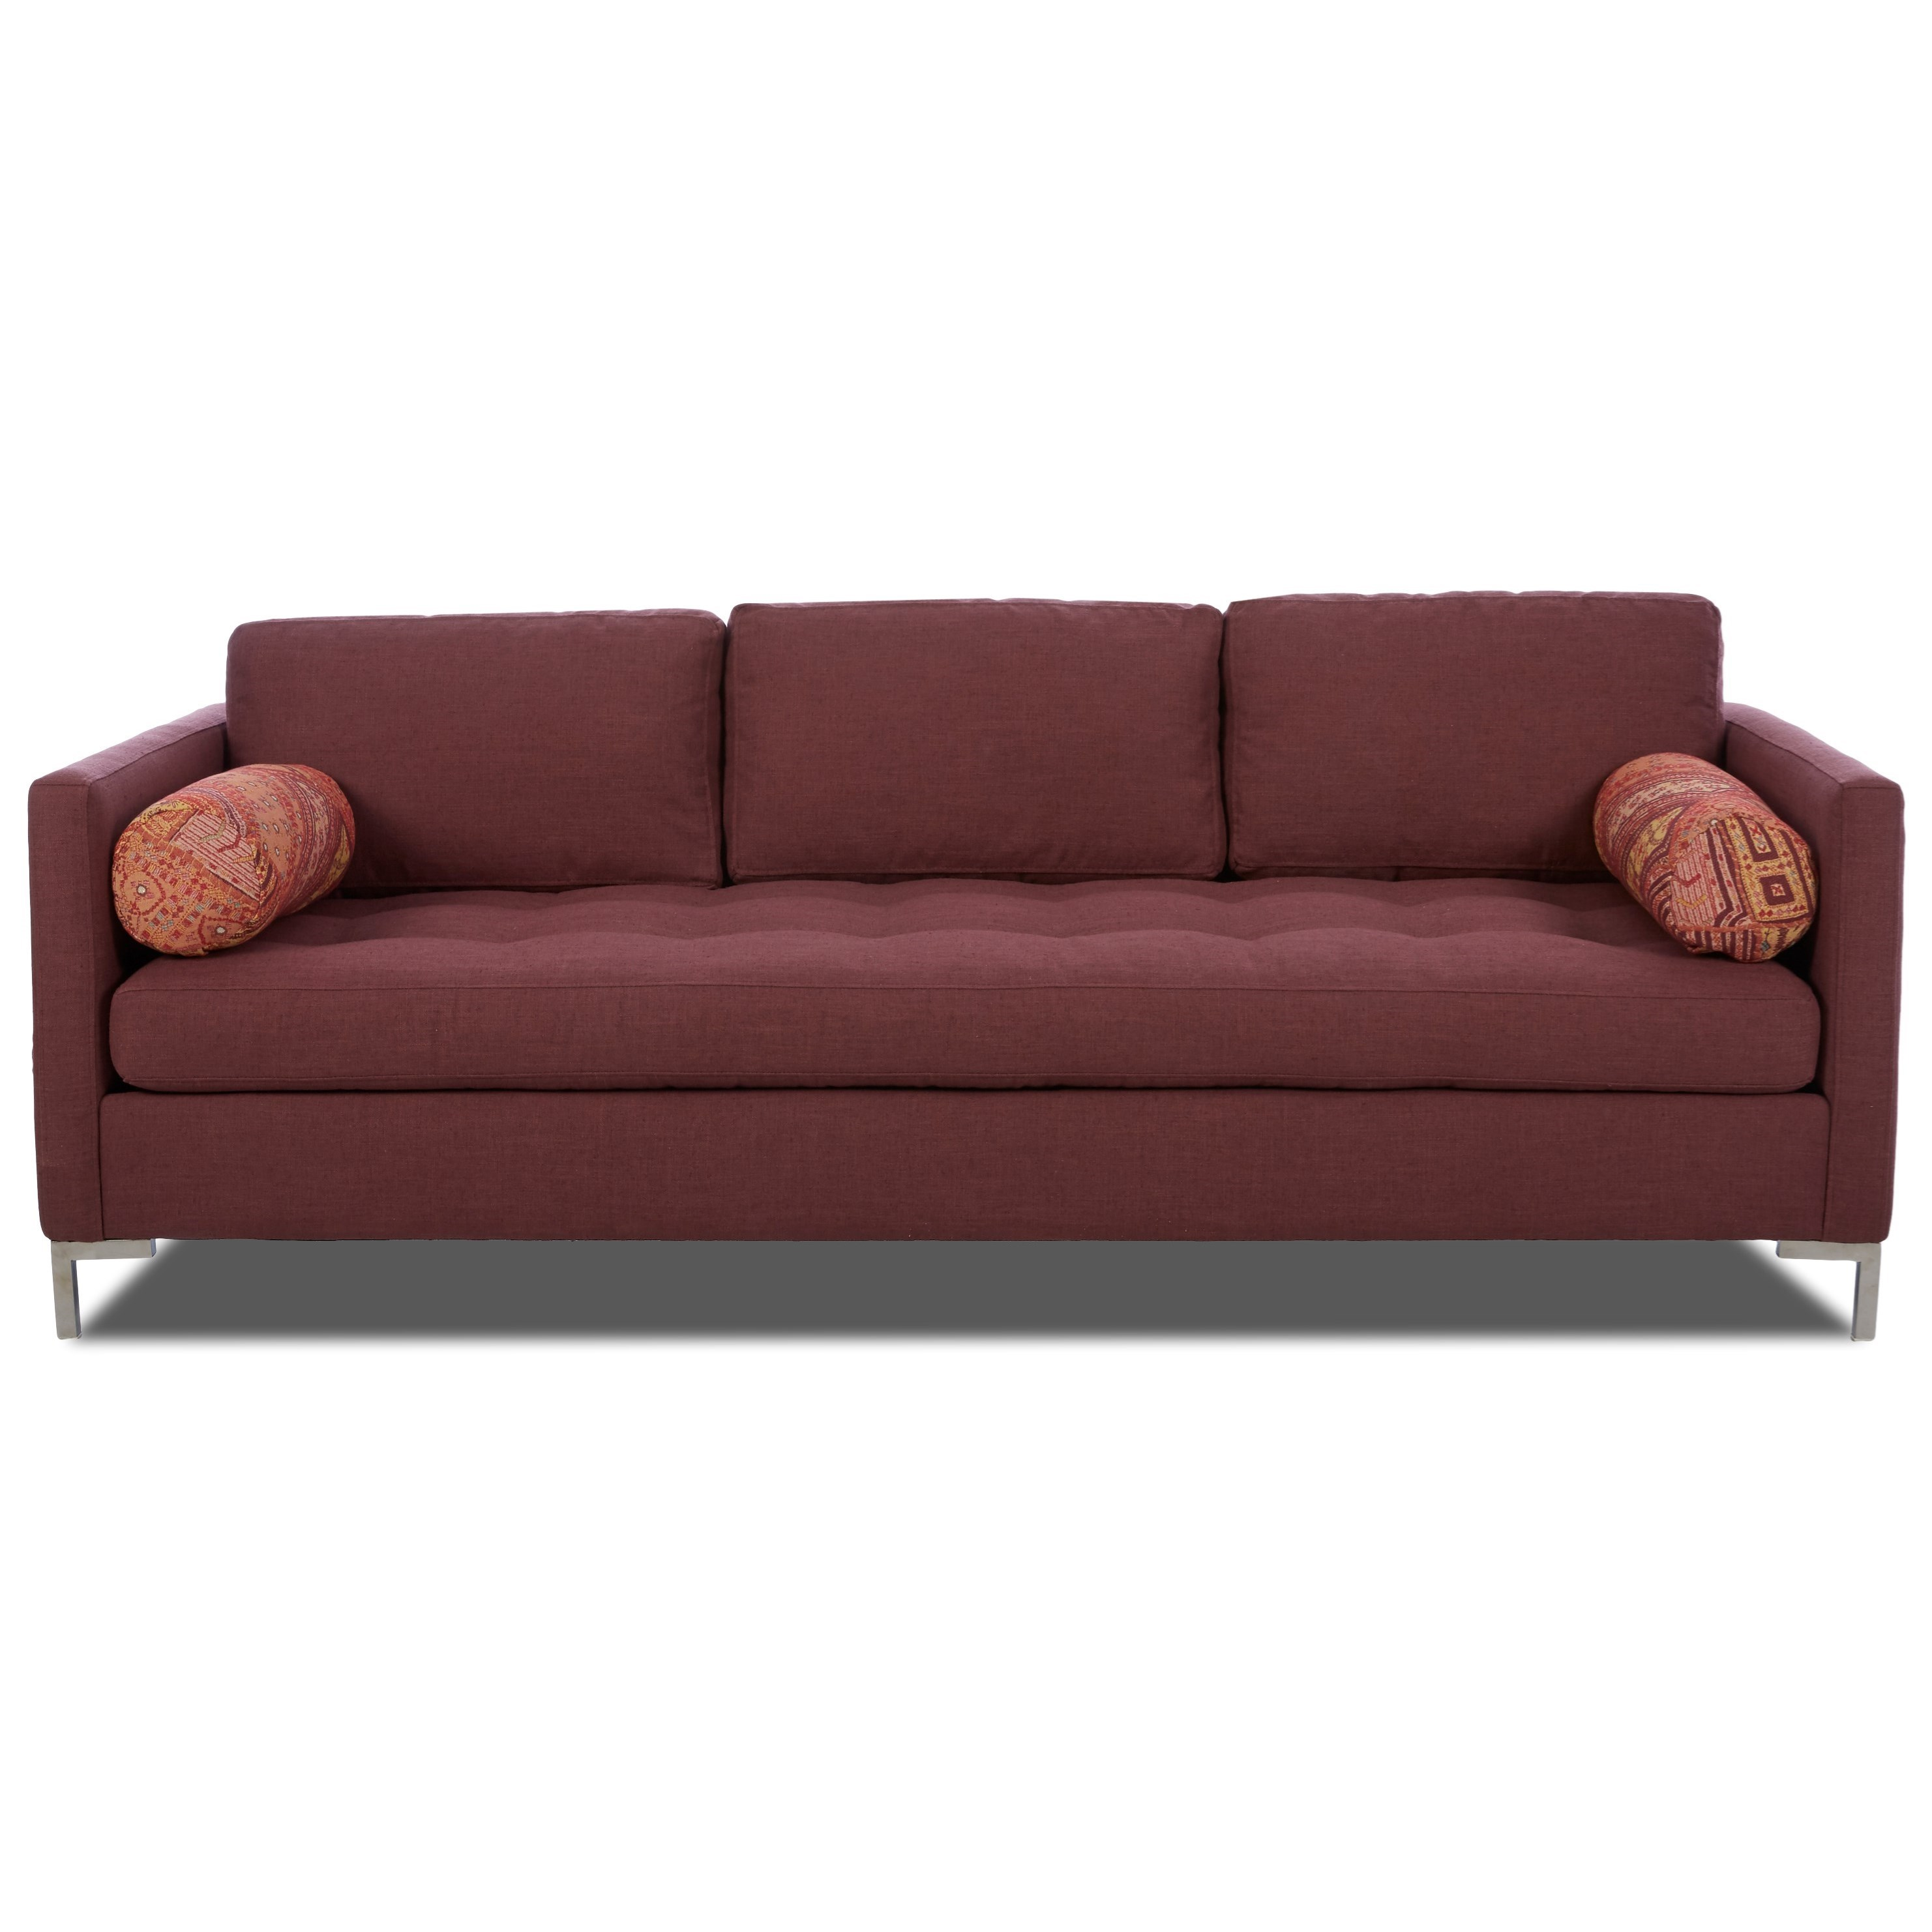 Klaussner Contemporary Sofa